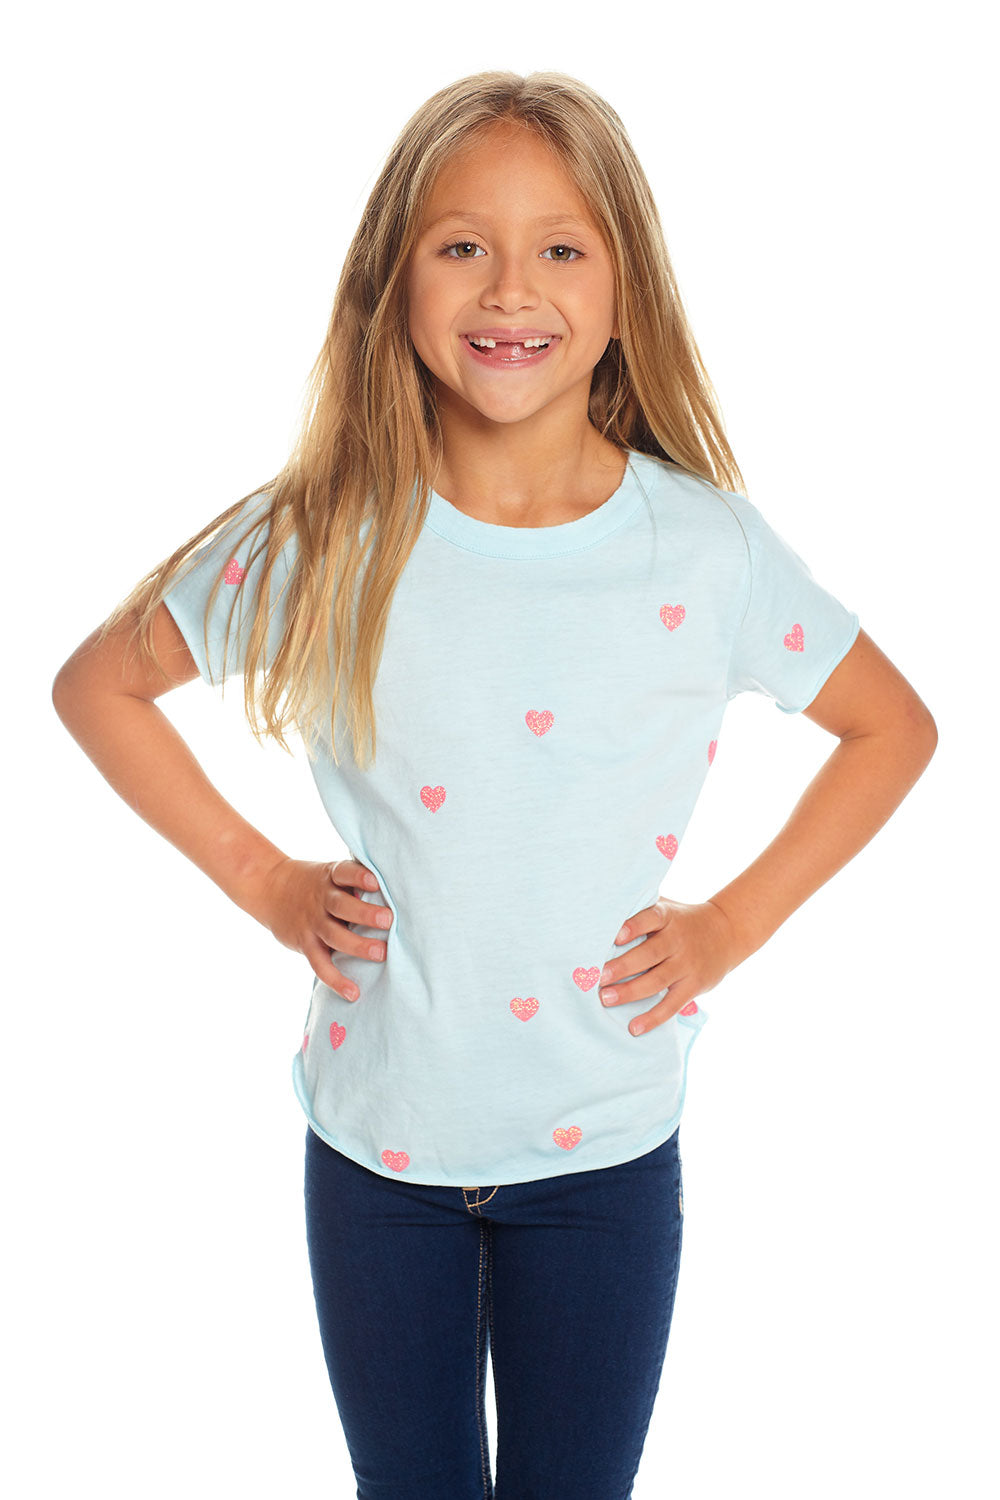 Tiny Hearts GIRLS chaserbrand4.myshopify.com